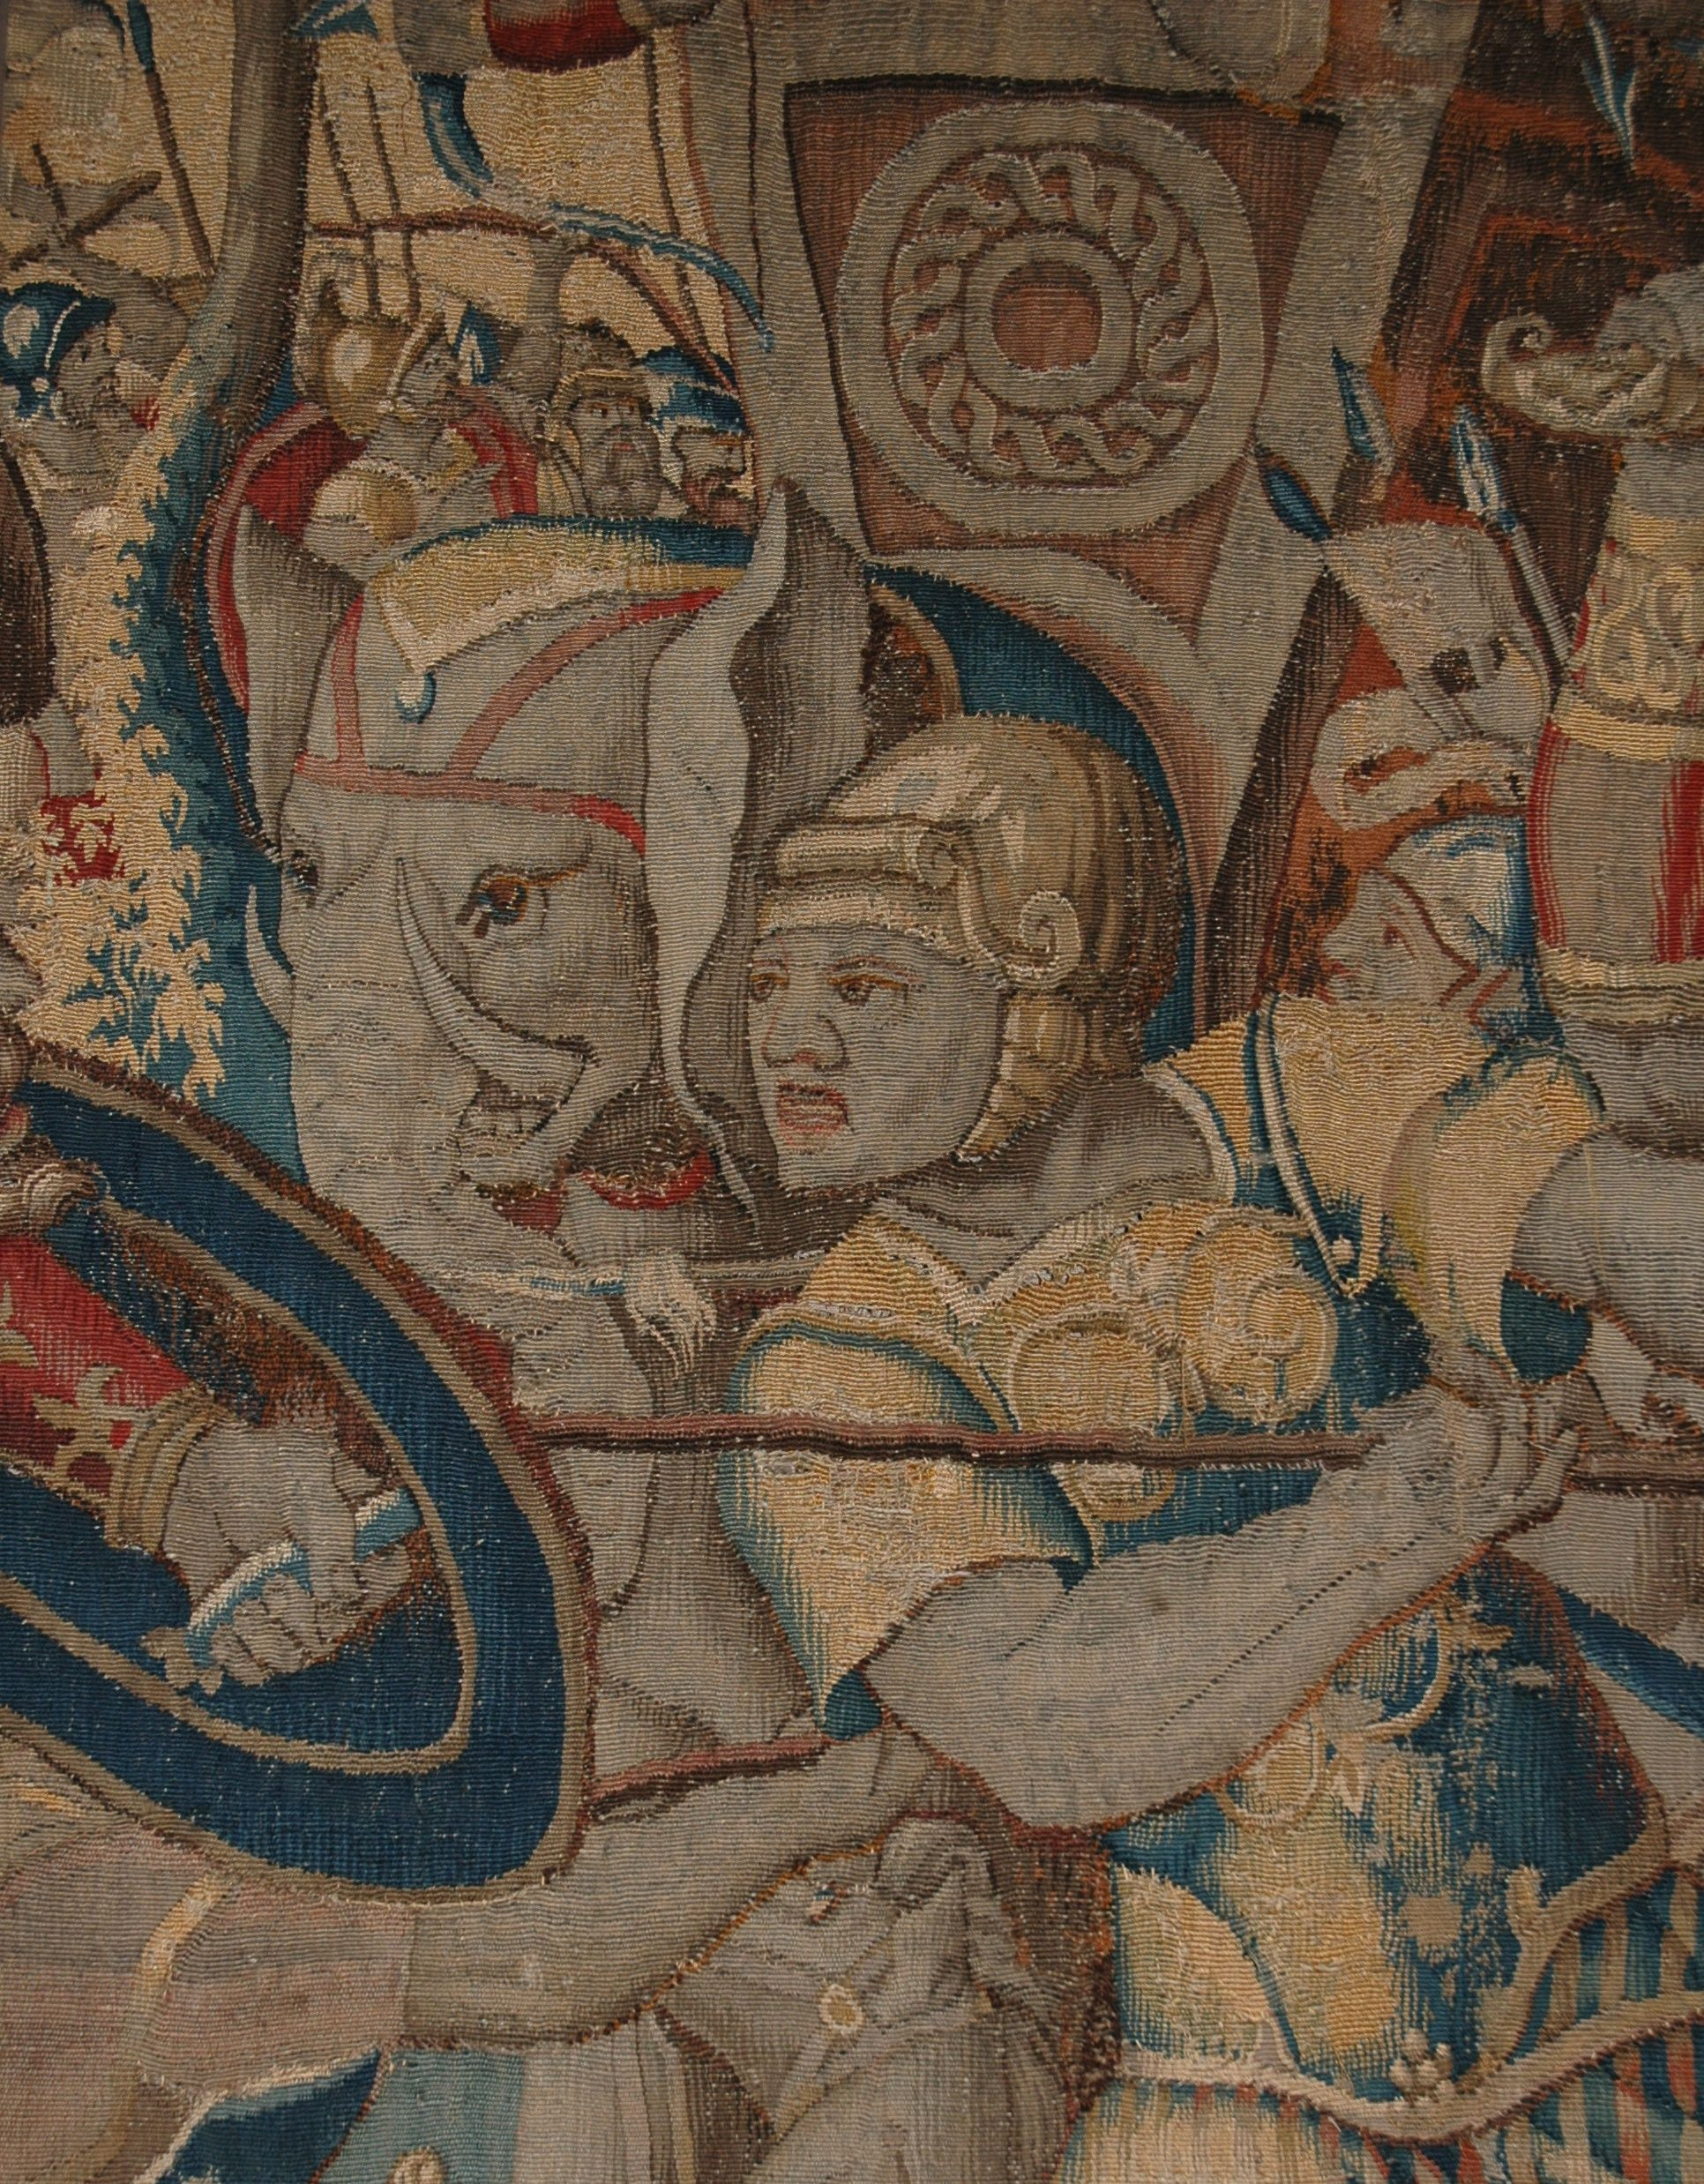 """Here's a close up of the Scipio and Hannibal tapestry. Scipio won this battle and as is considered one of the great generals of history. Find out more about Scipio, Hannibal and the war elephants in """"Classical Art"""", Beyond the Tour, May 25, 2016. (Presented by Elizabeth Spoden, Coordinator of Visitor Services and Education)"""